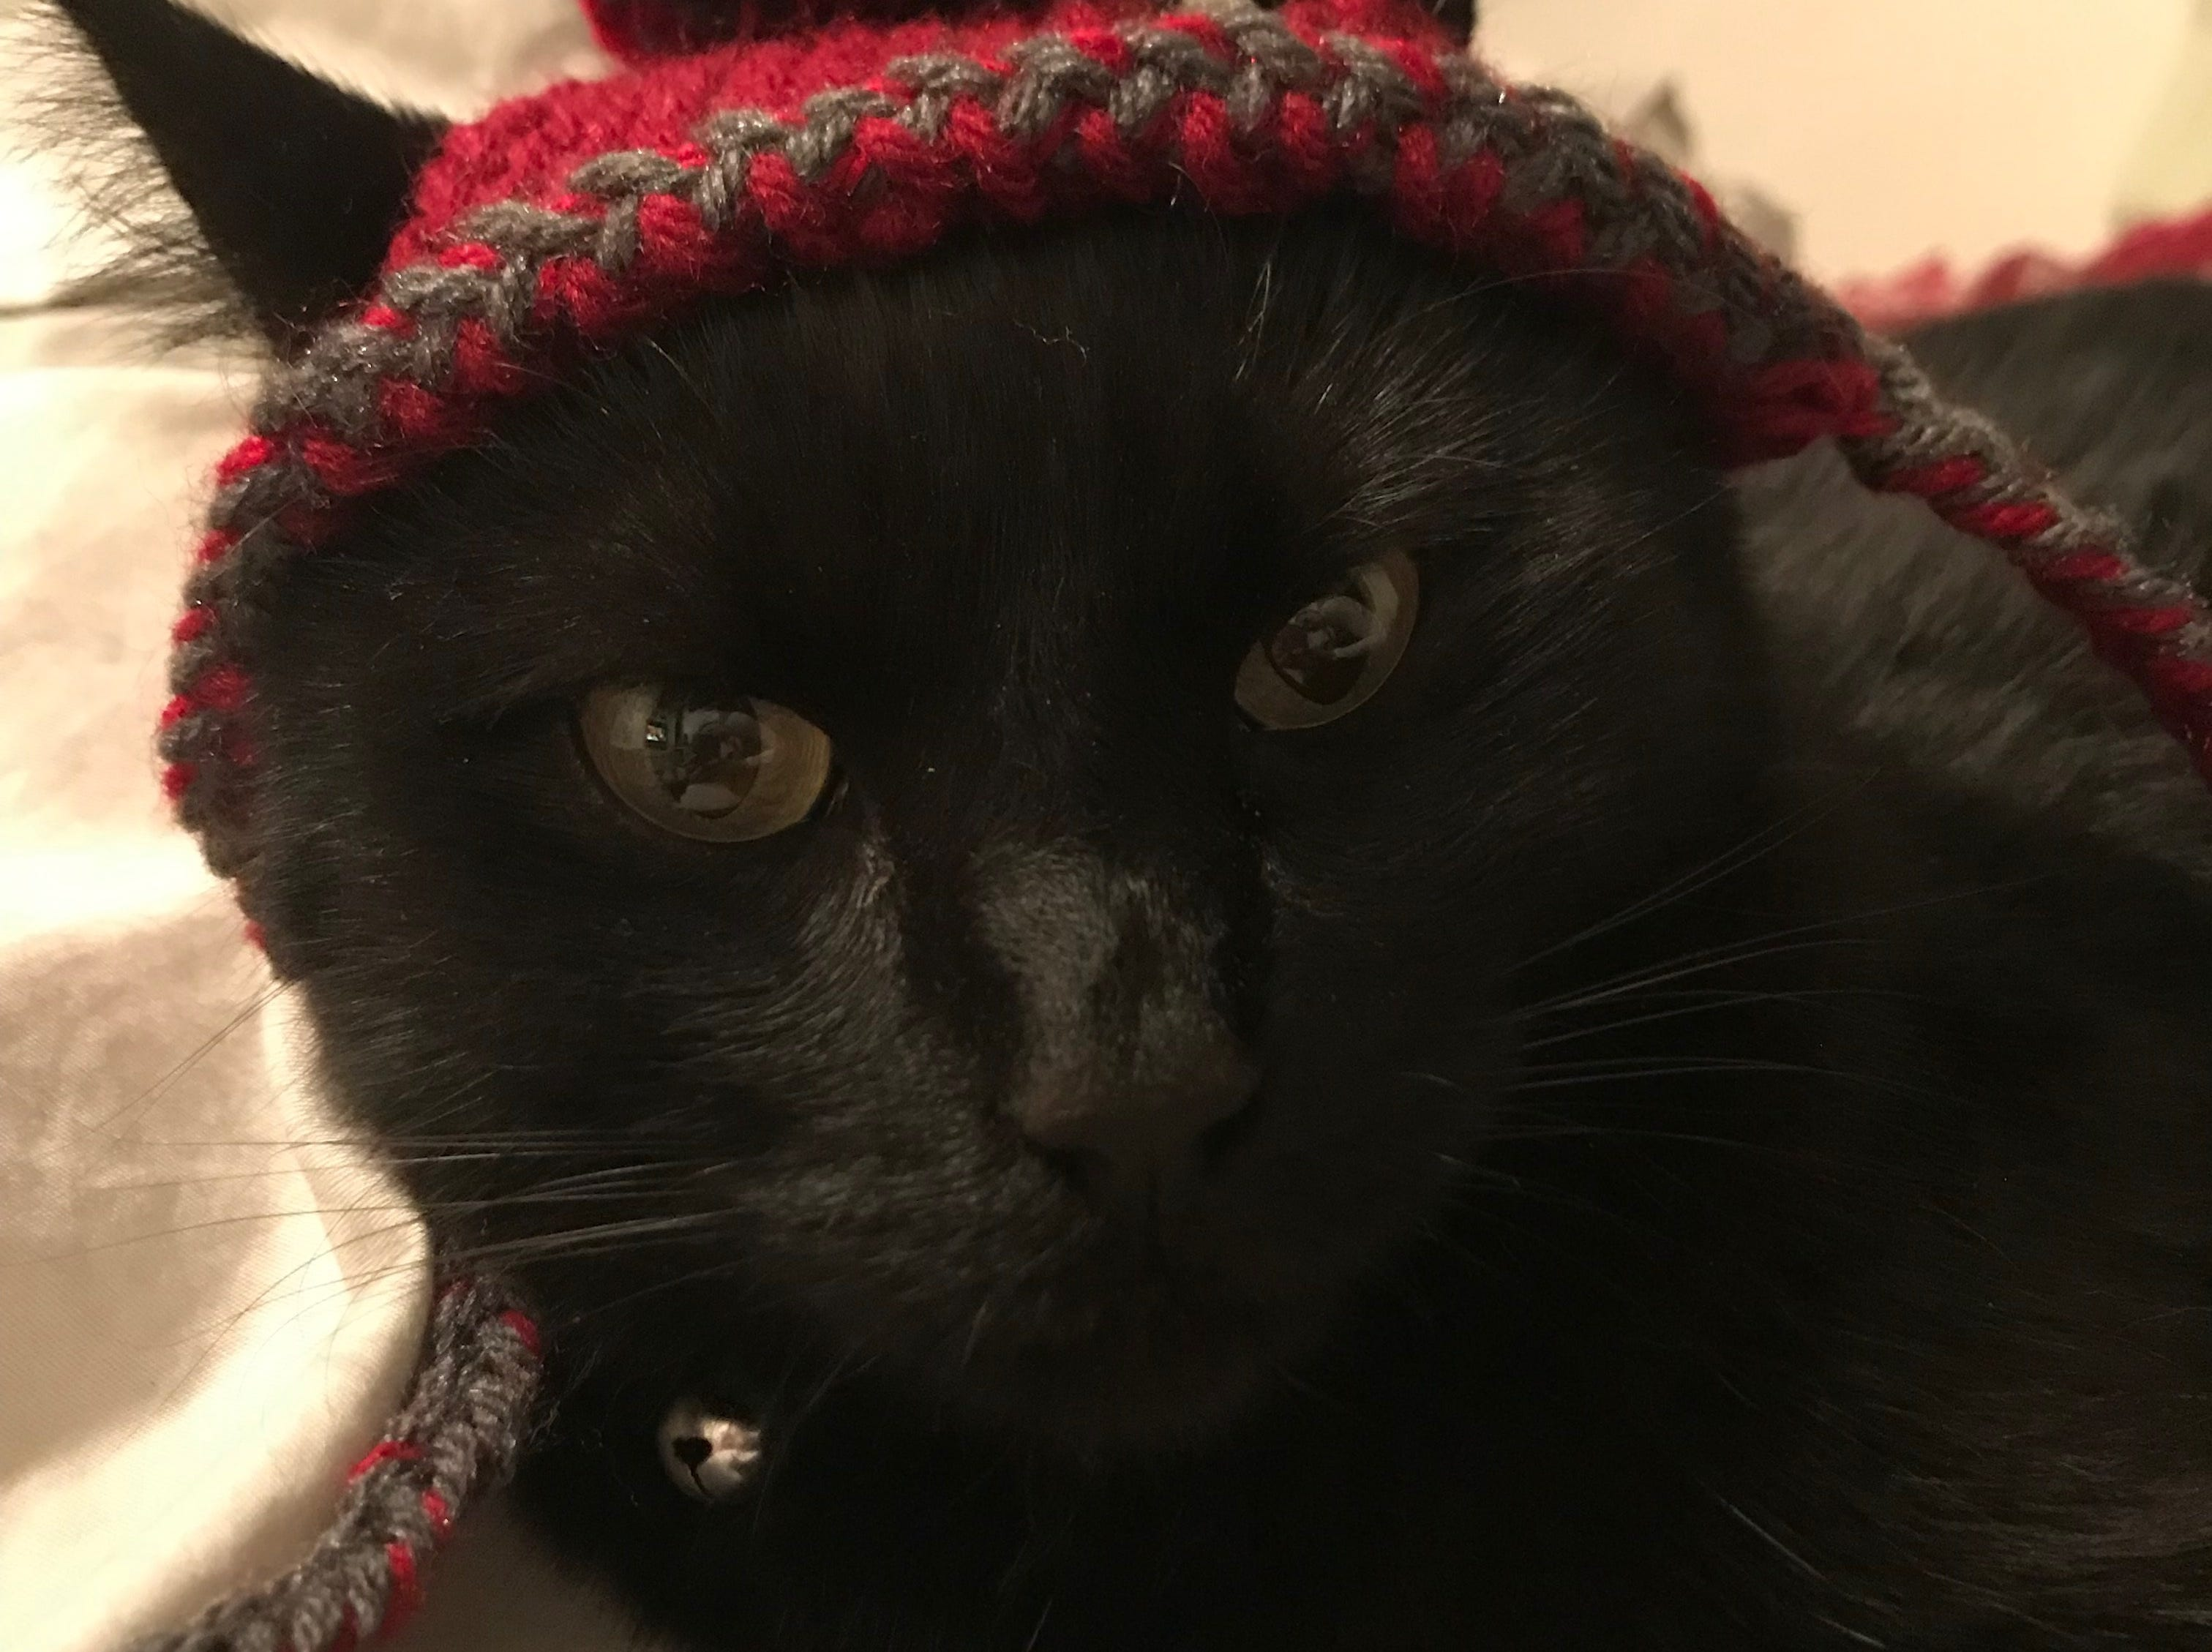 """Jennie Gresham knits """"Cat Hats"""" for friends, family and by request, asking only that recipients donate to the Maclean Animal Adoption Center in return.  Owners take photos and send their cats' """"comment"""" on the hat.  Kopa the cat doesn't have much to say."""